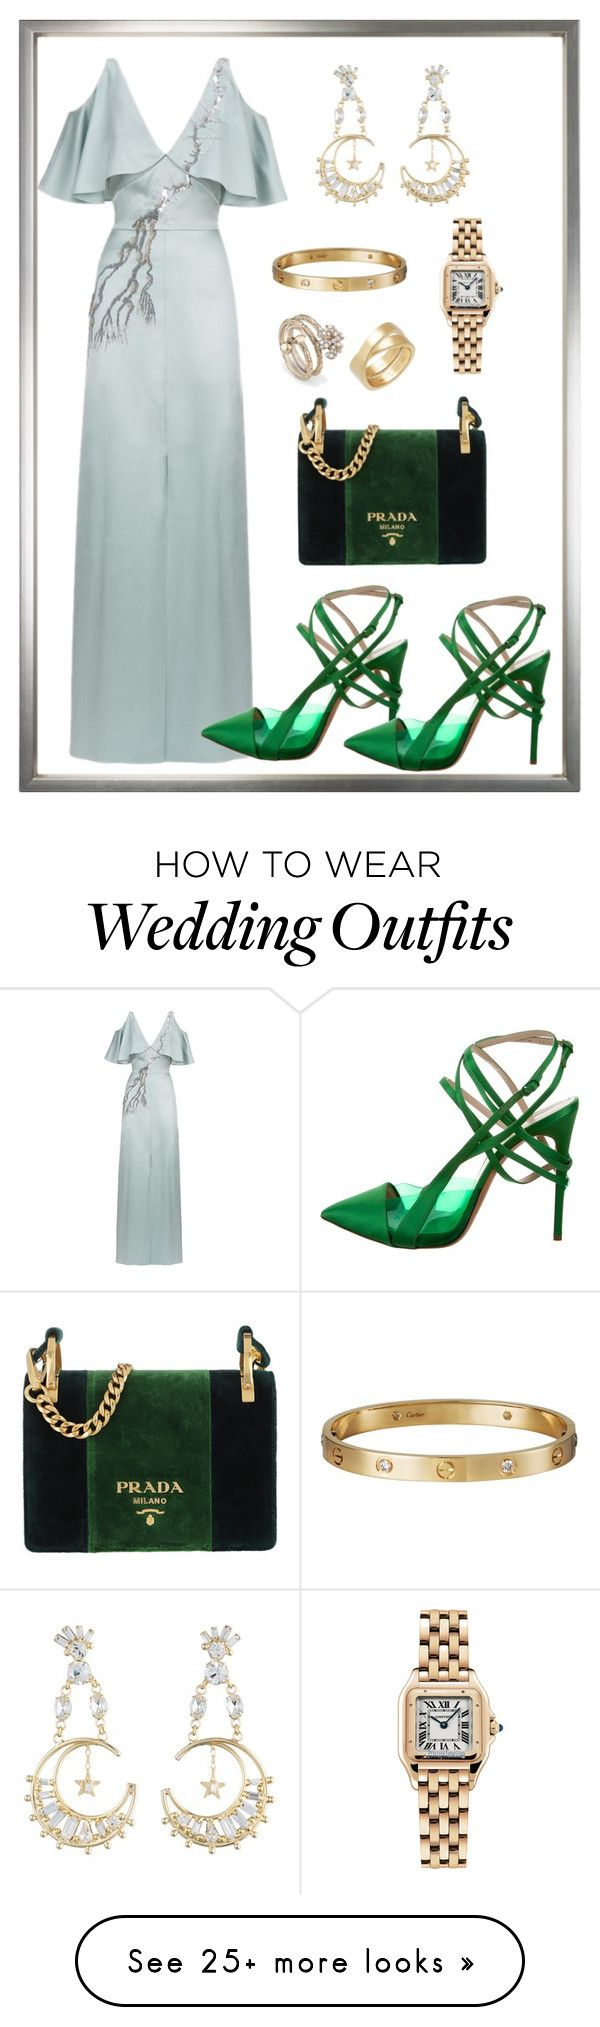 """Weddings"" by patrav on Polyvore featuring Temperley London, Casadei, Prada, Cartier, Gucci, contestentry and polyvoreeditorial"